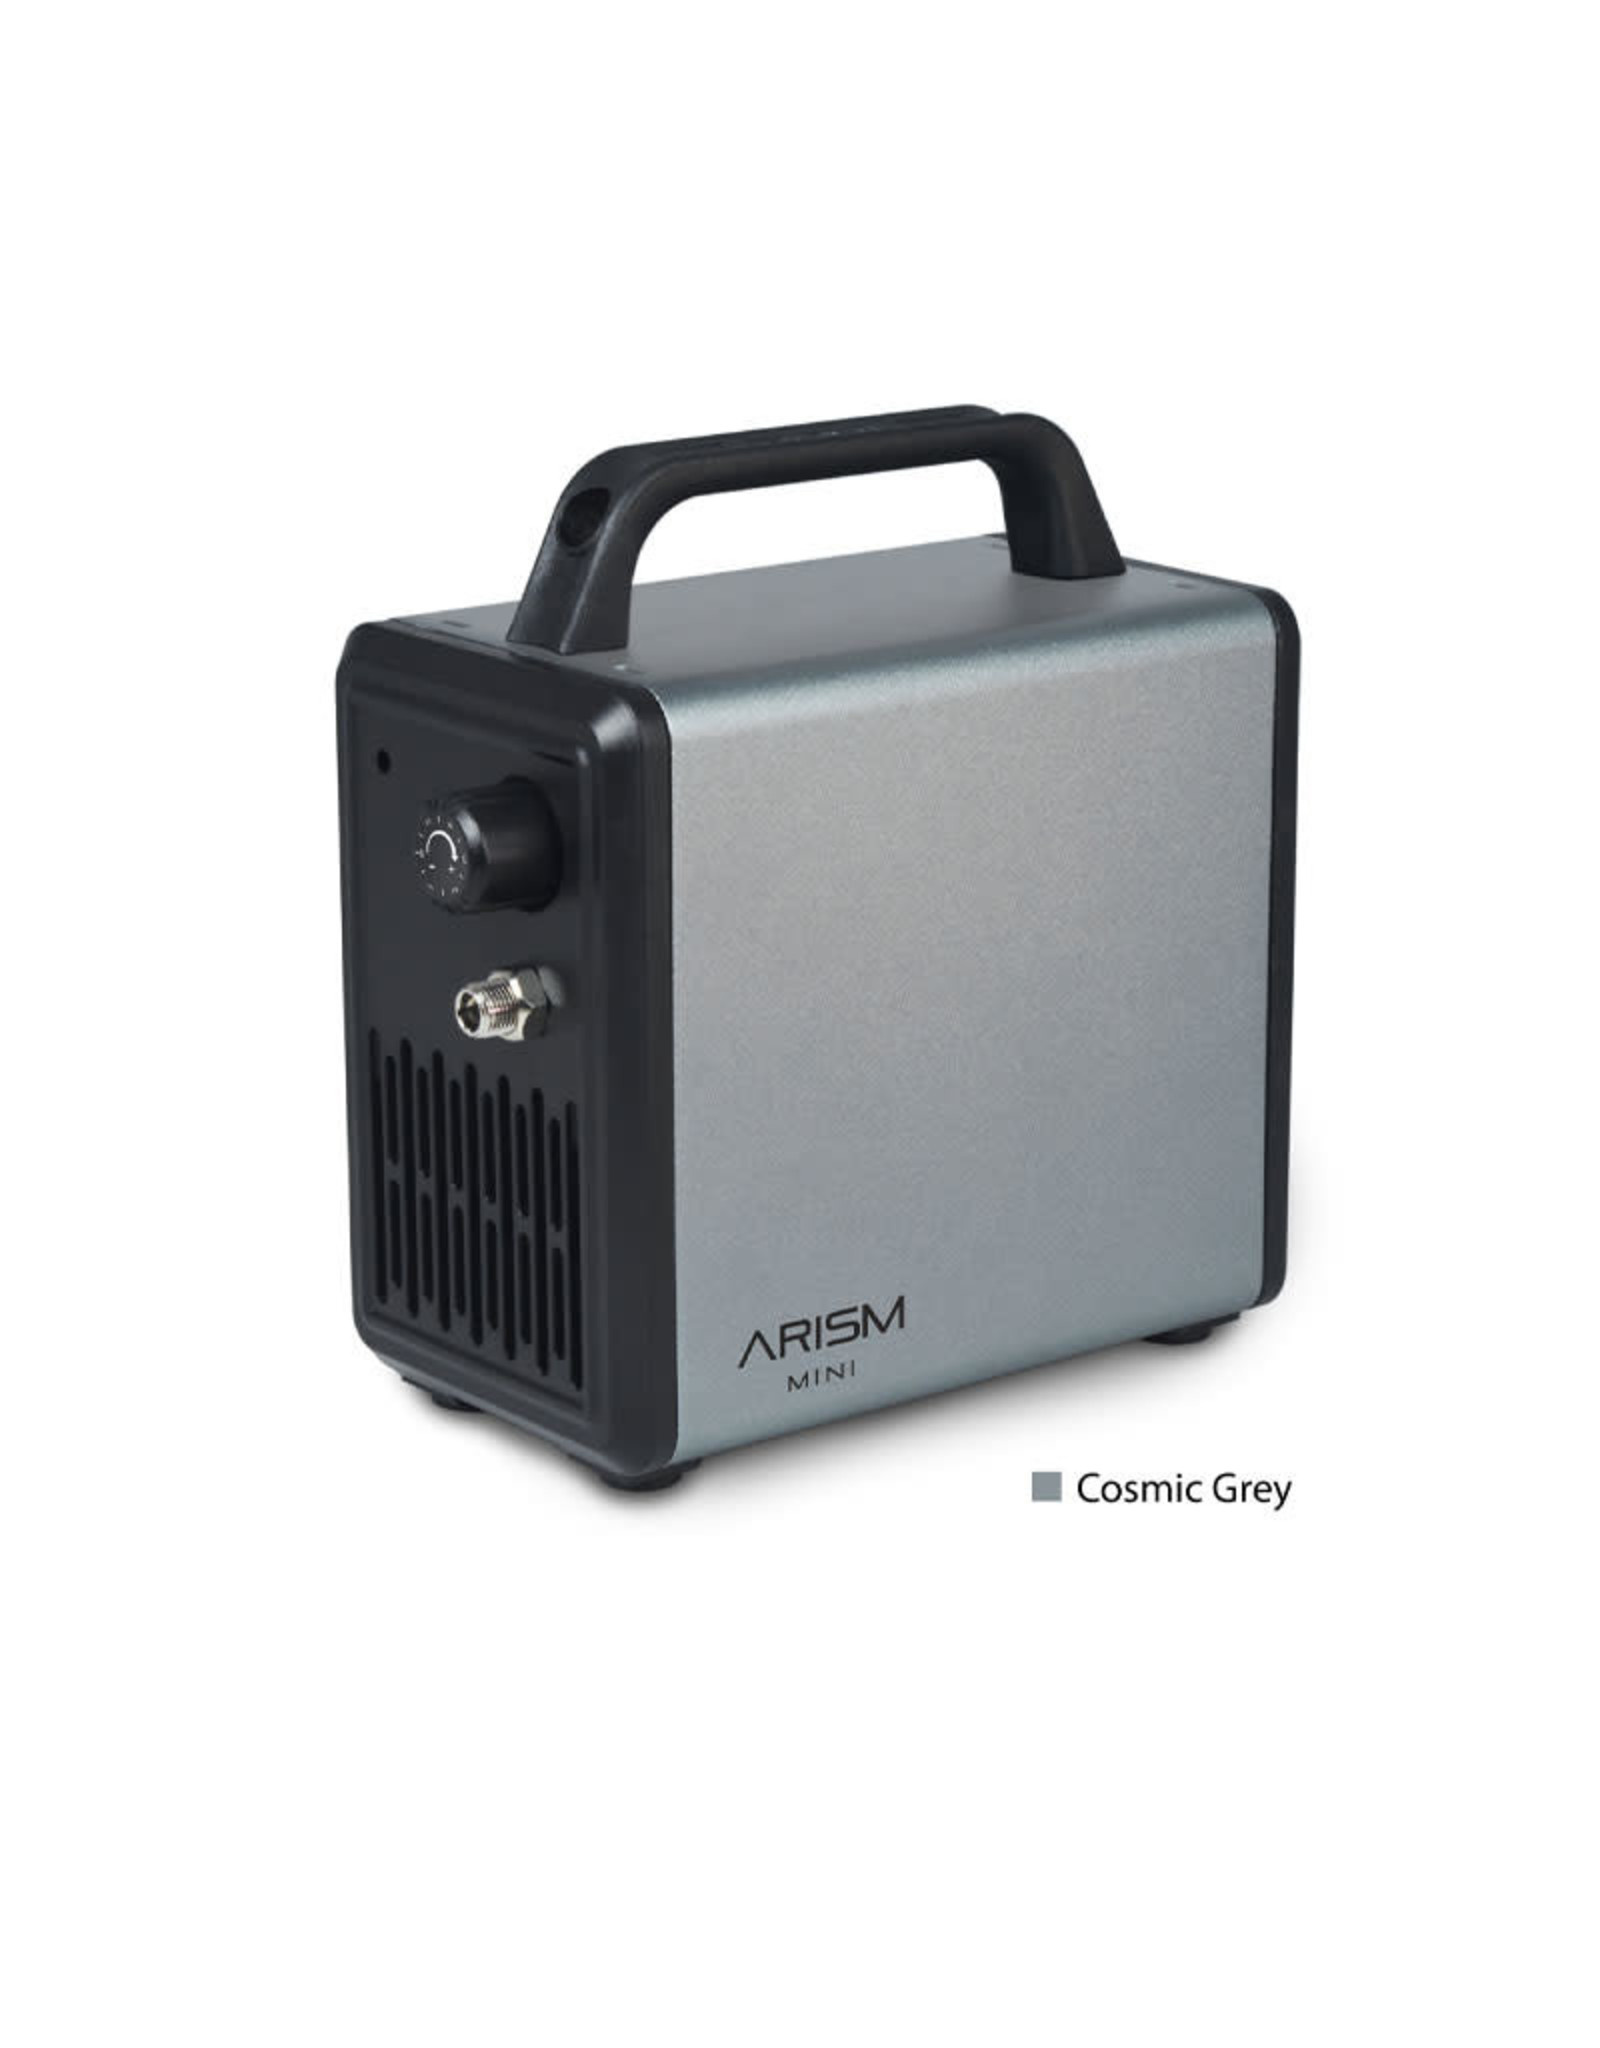 Sparmax Airbrush Sparmax ARISM MINI Compressor